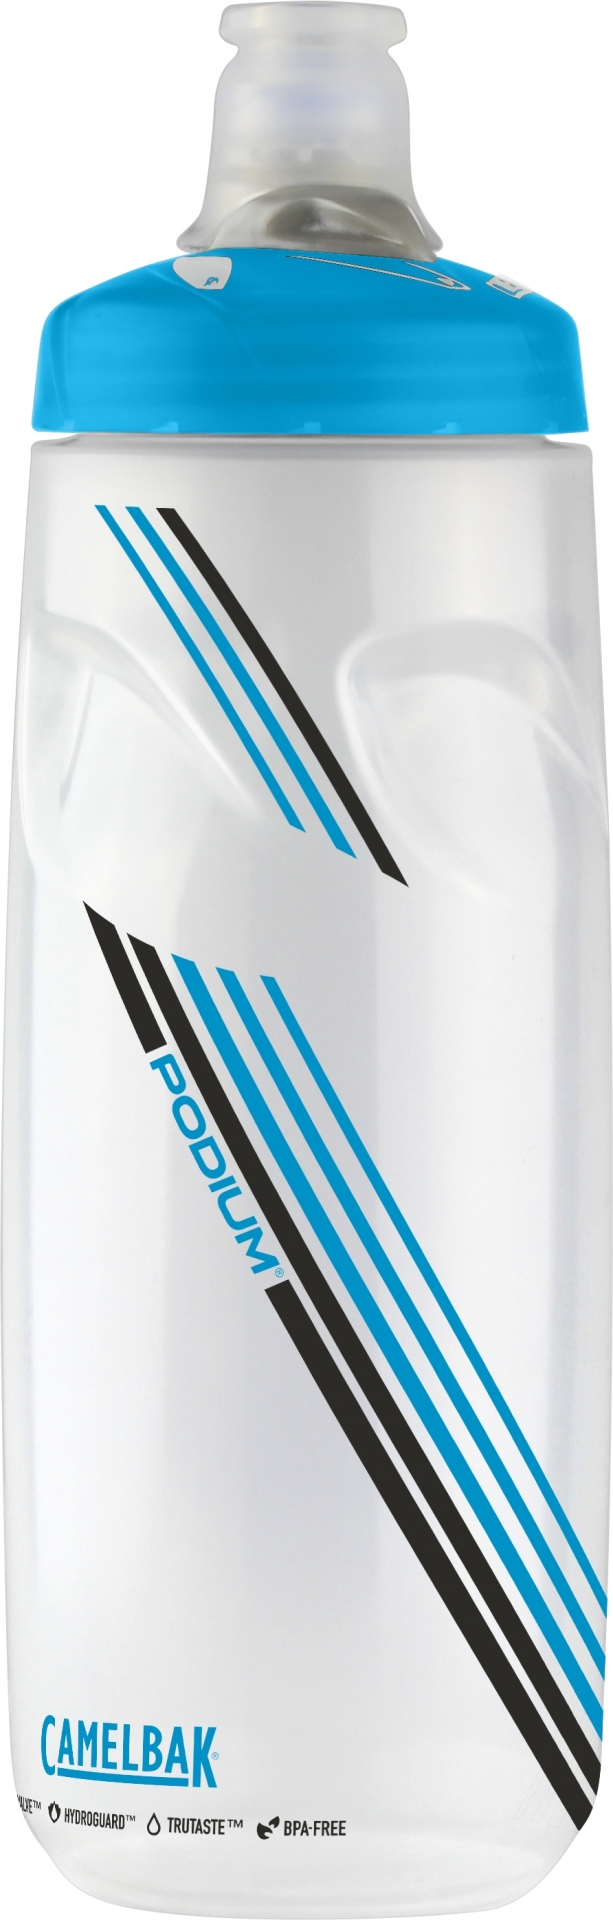 Bidon CamelBak Podium 710 ml Transparent/Bleu